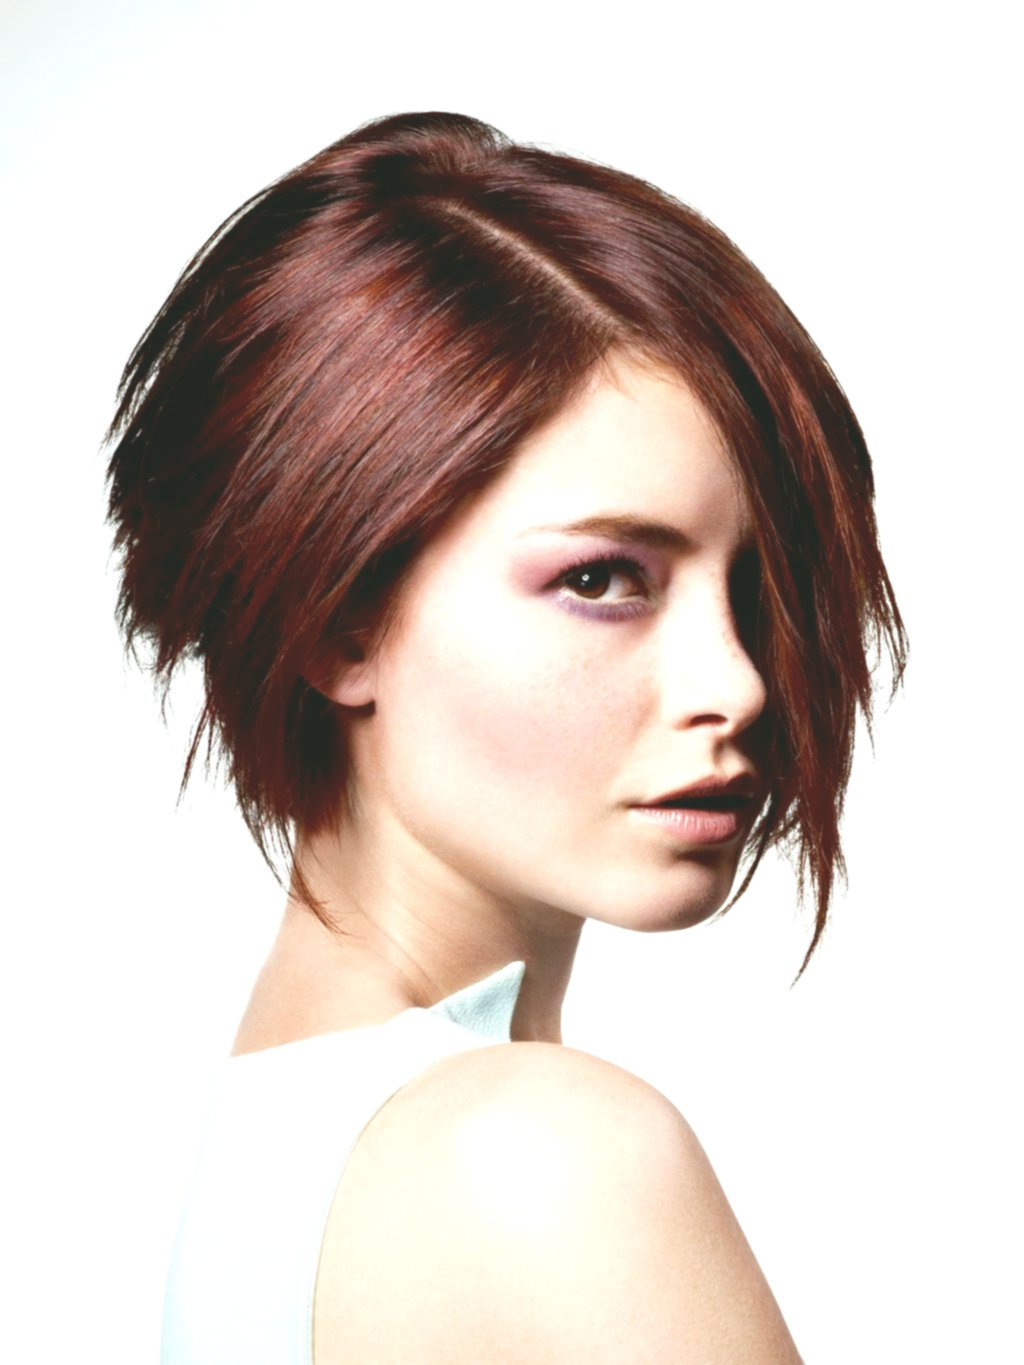 lovely pictures bob hairstyles architecture-beautiful pictures Bob hairstyles ideas